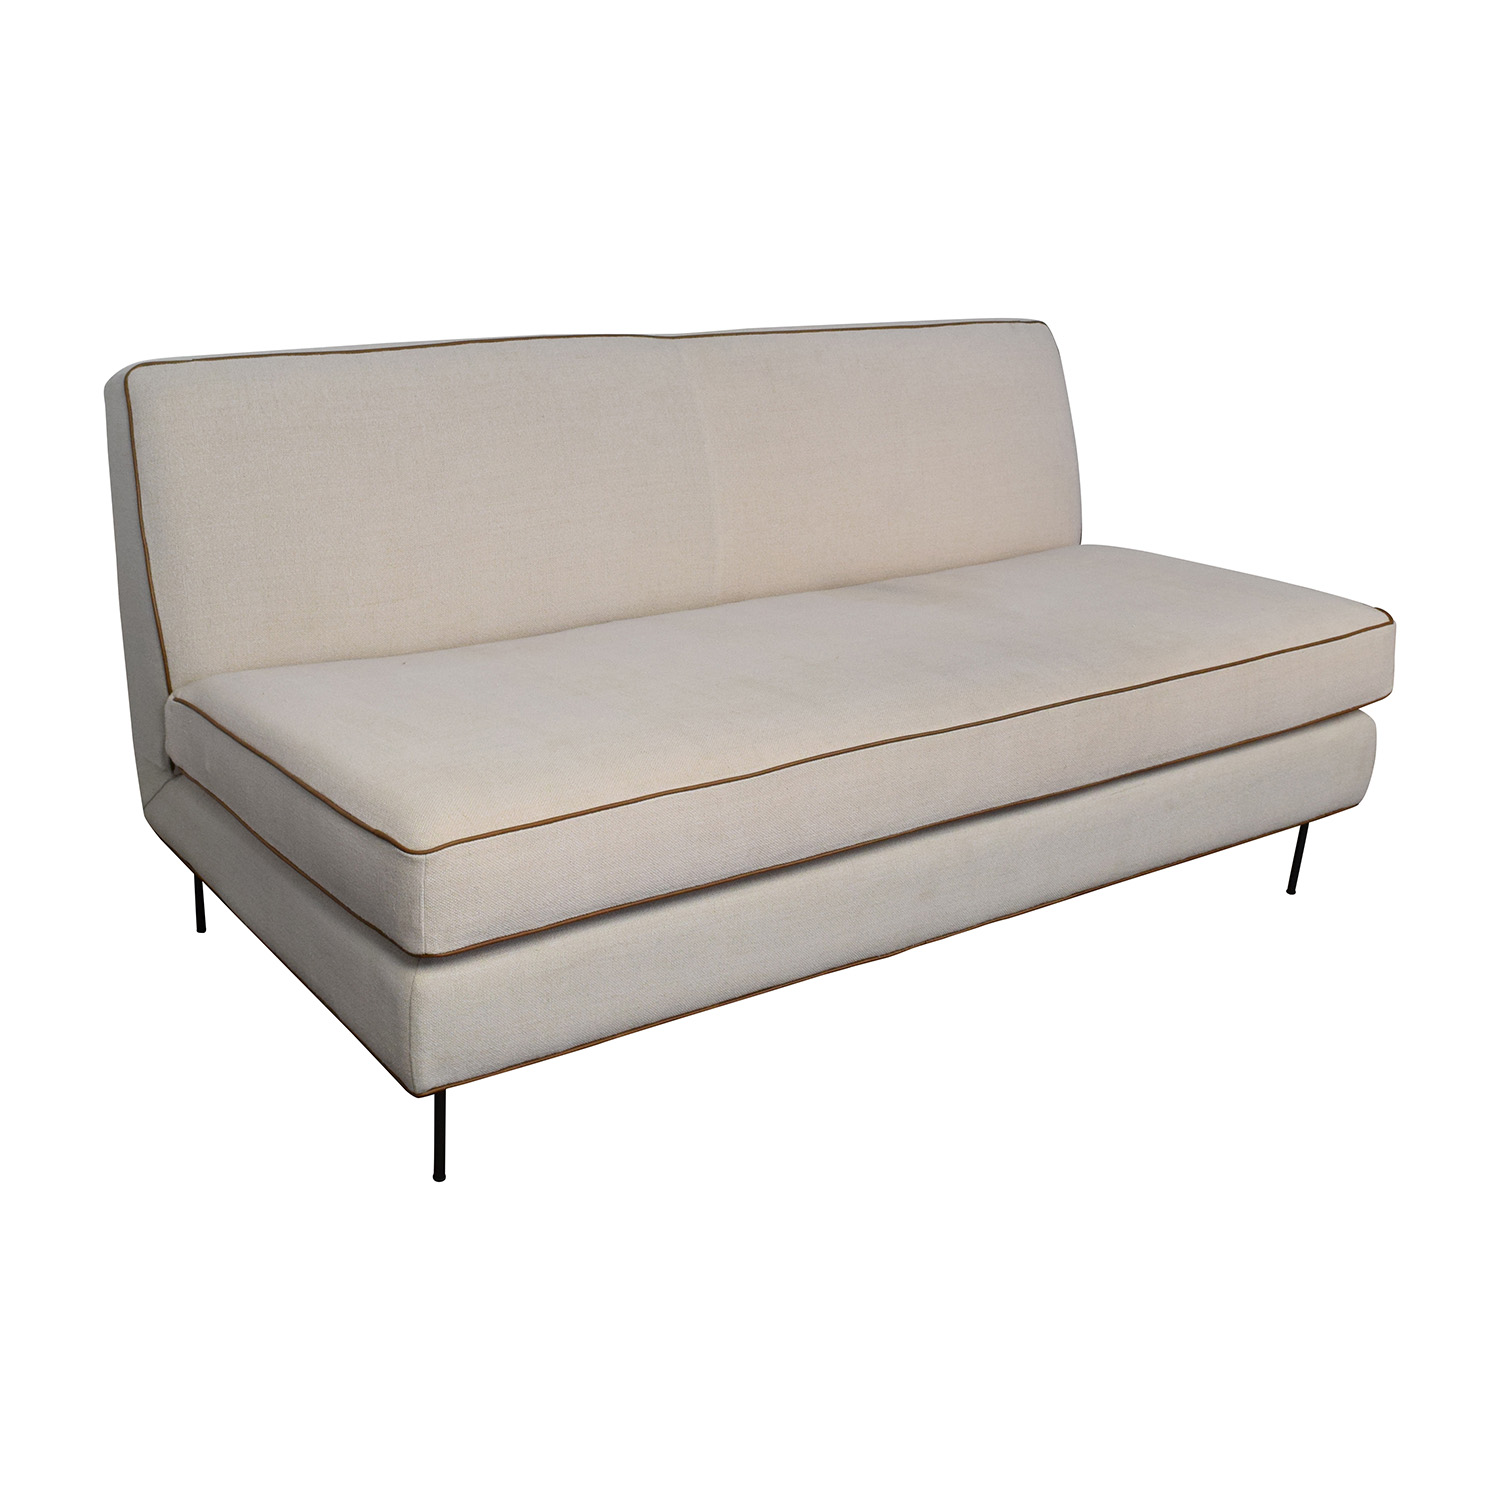 56 off west elm west elm commune armless sofa sofas for Best west elm sofa